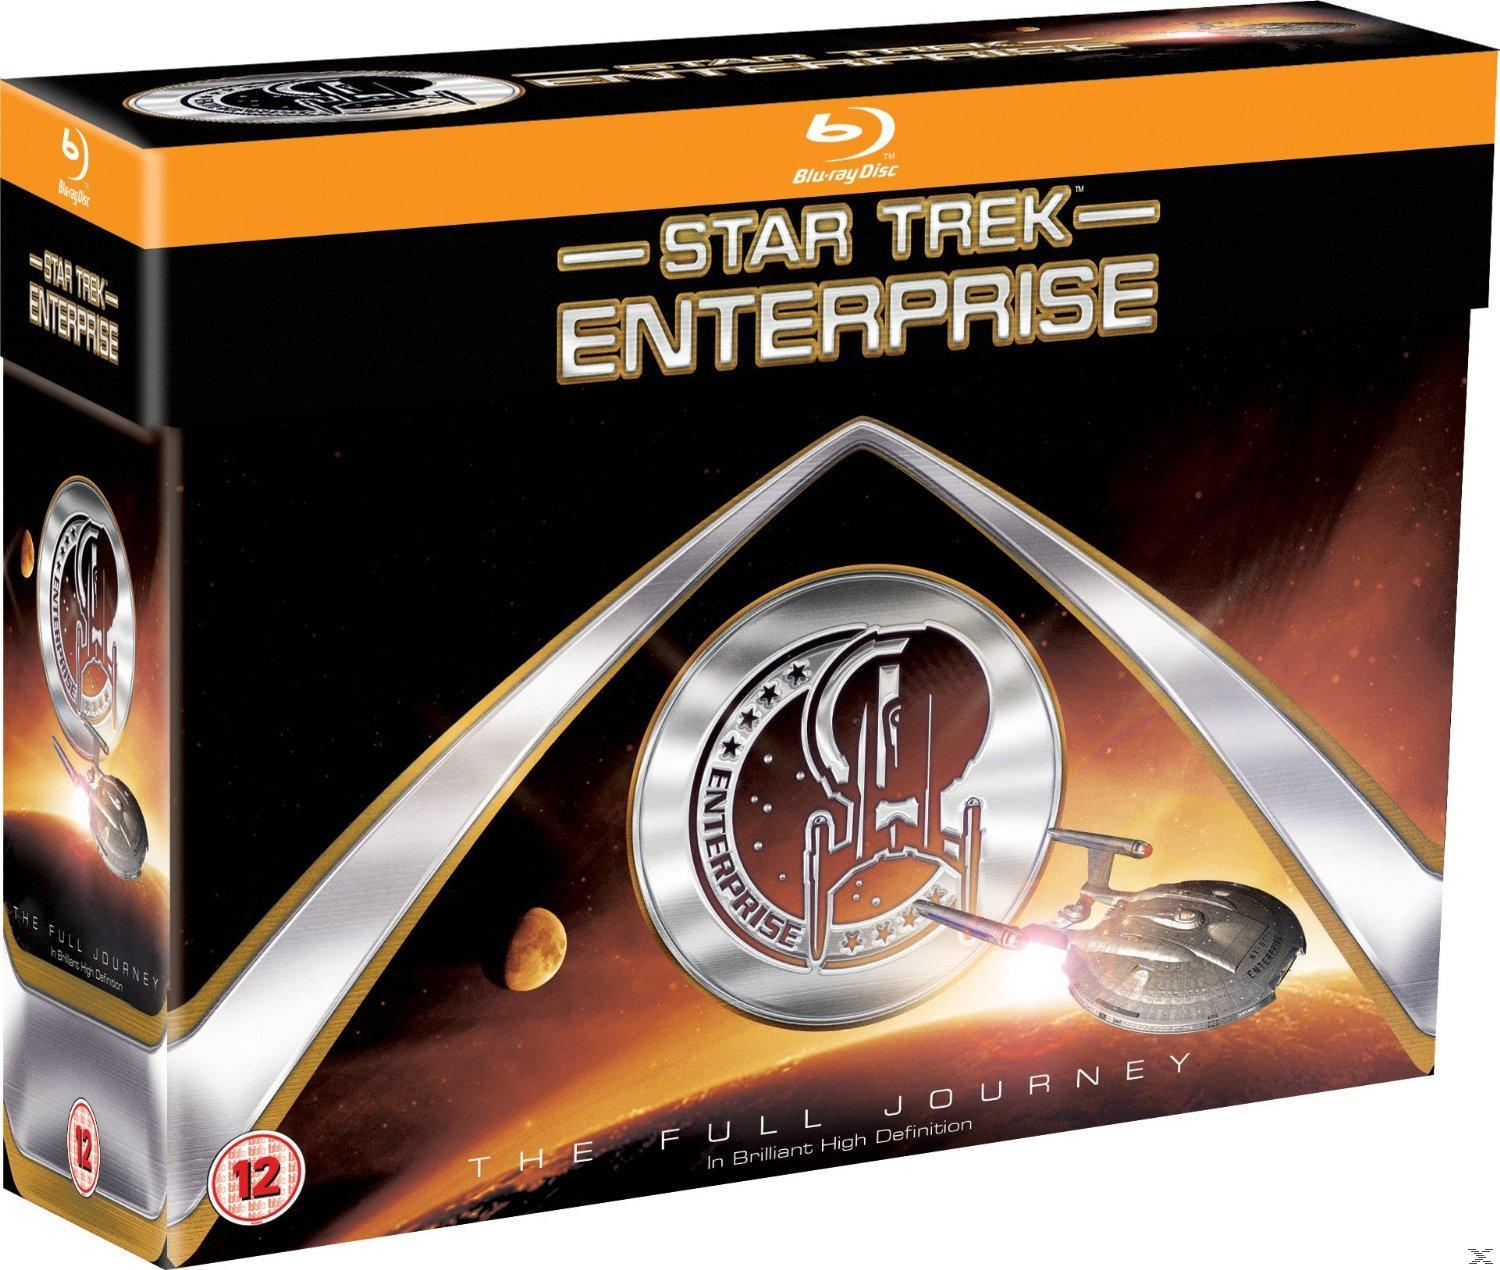 STAR TREK ENTERPRISE (24BL)